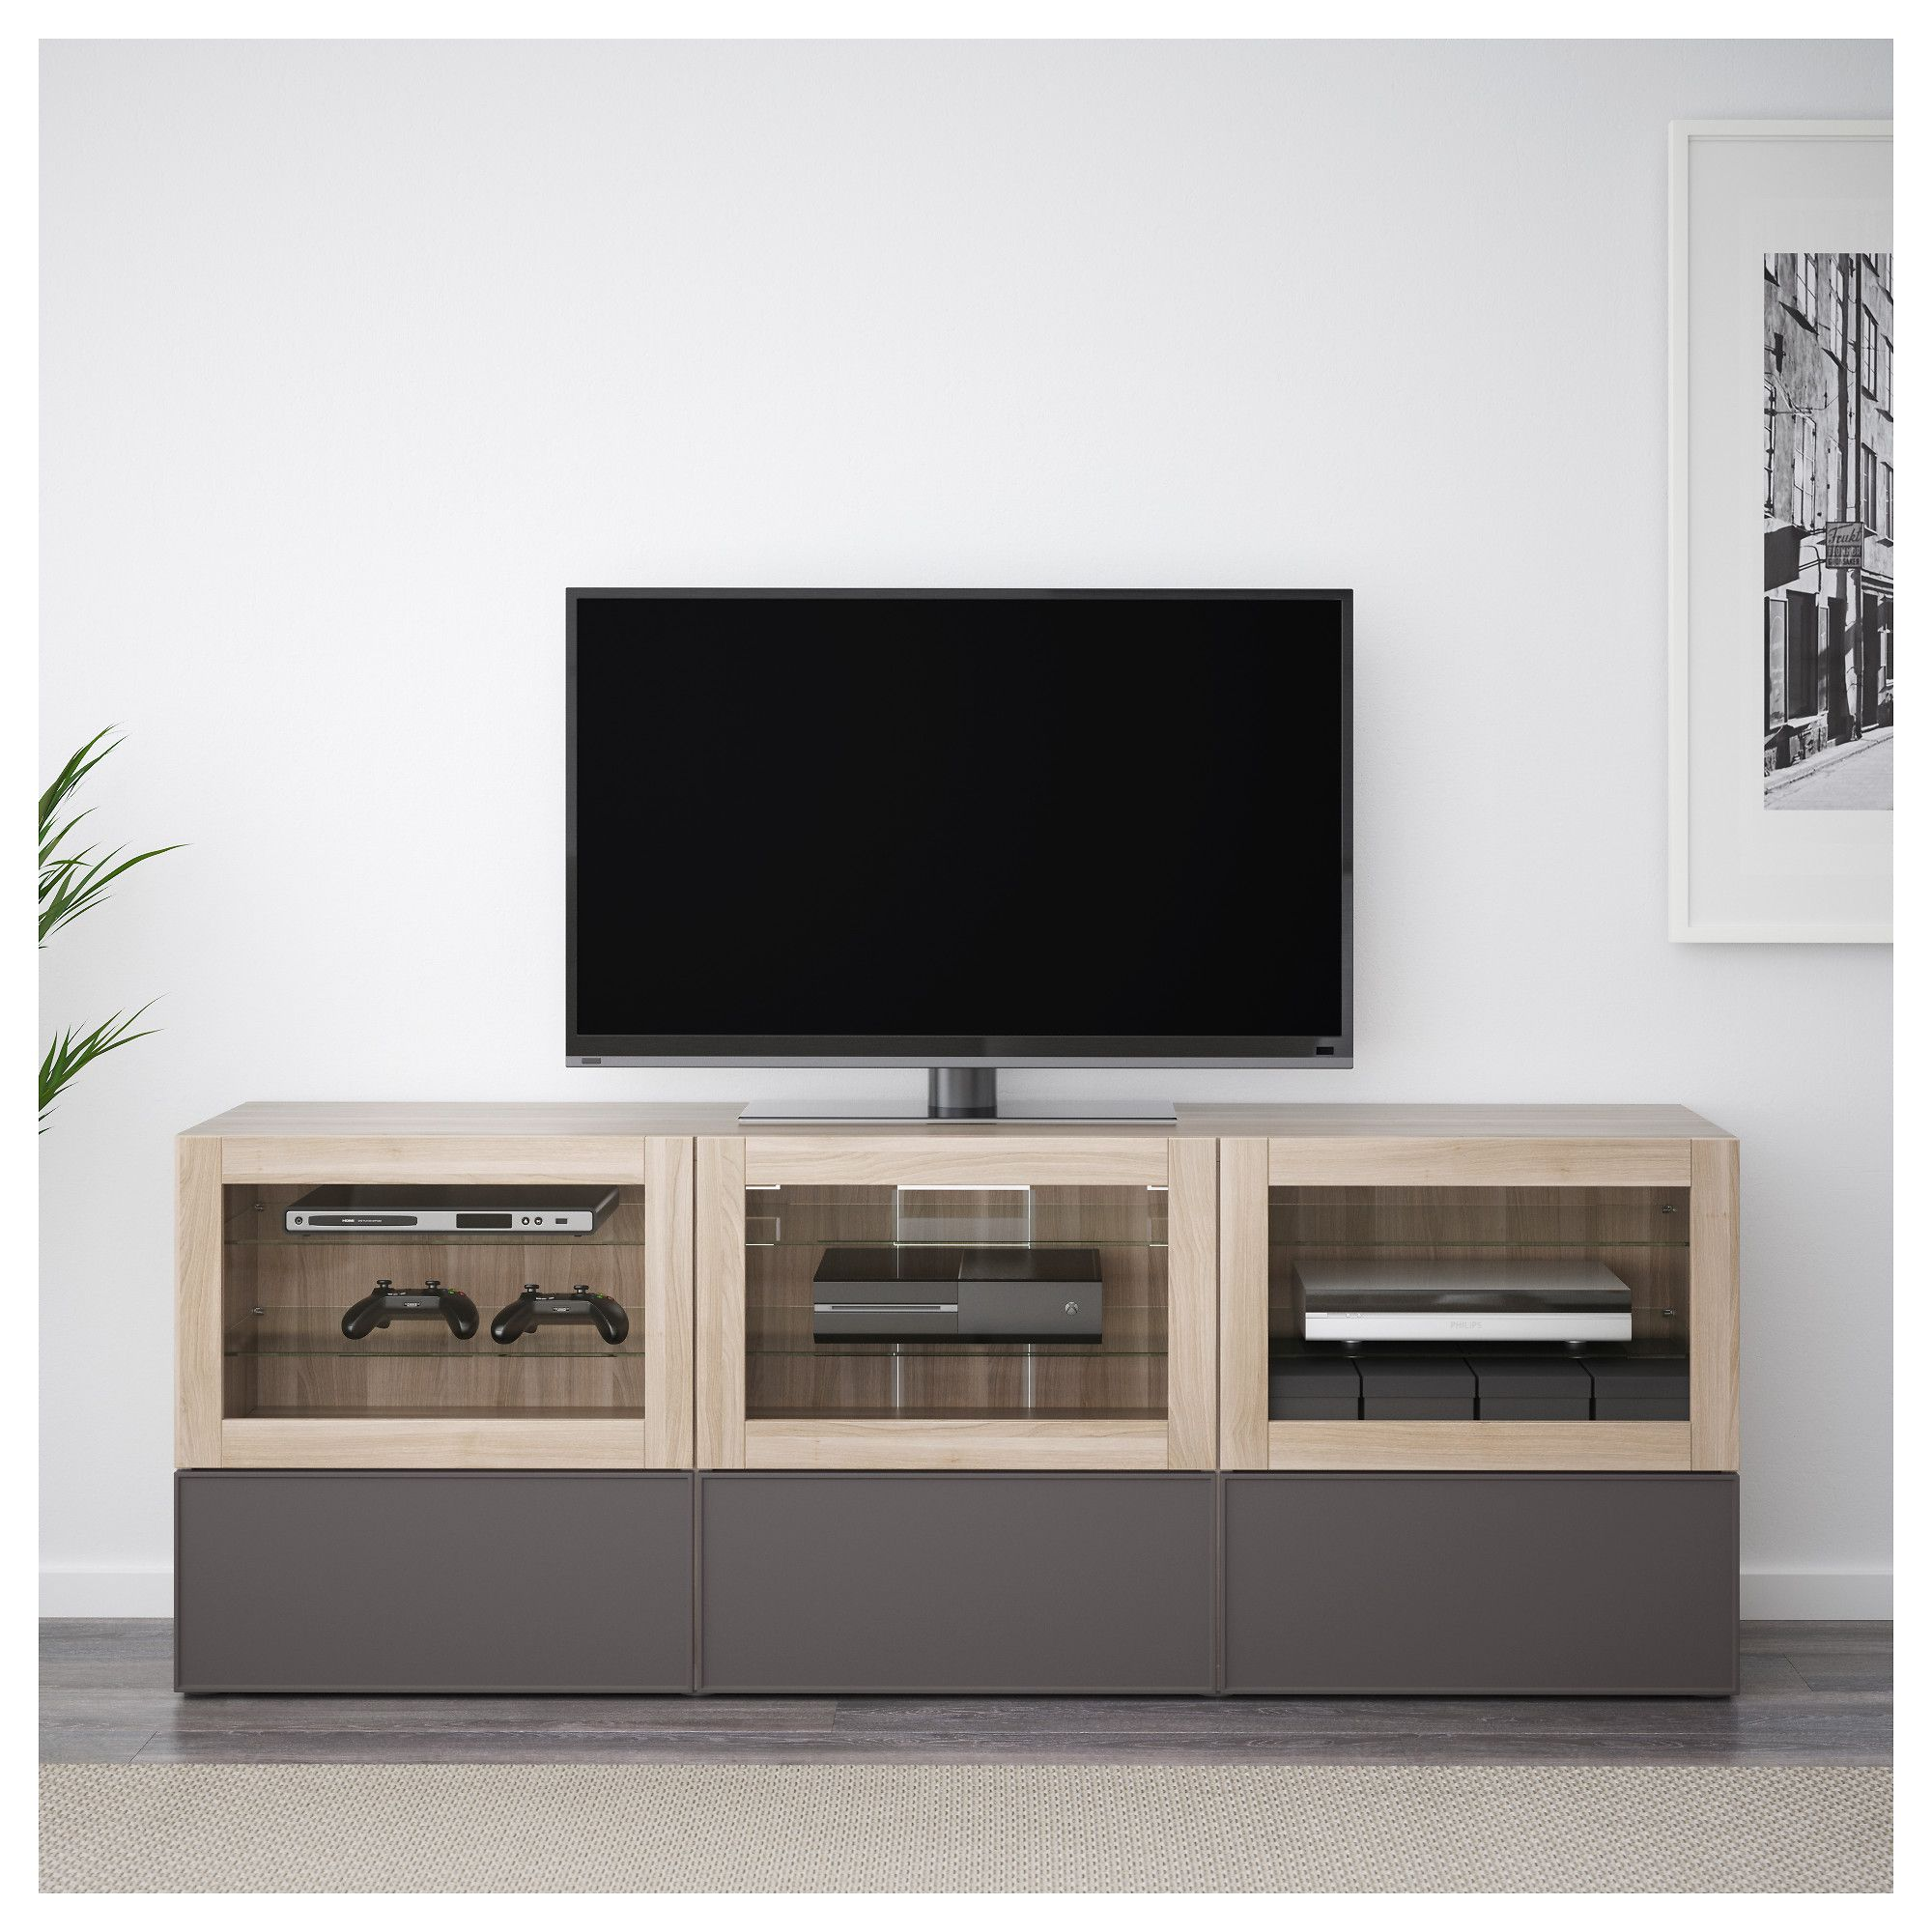 Ikea Bestå Tv Unit With Doors And Drawers Walnut Effect Light Gray